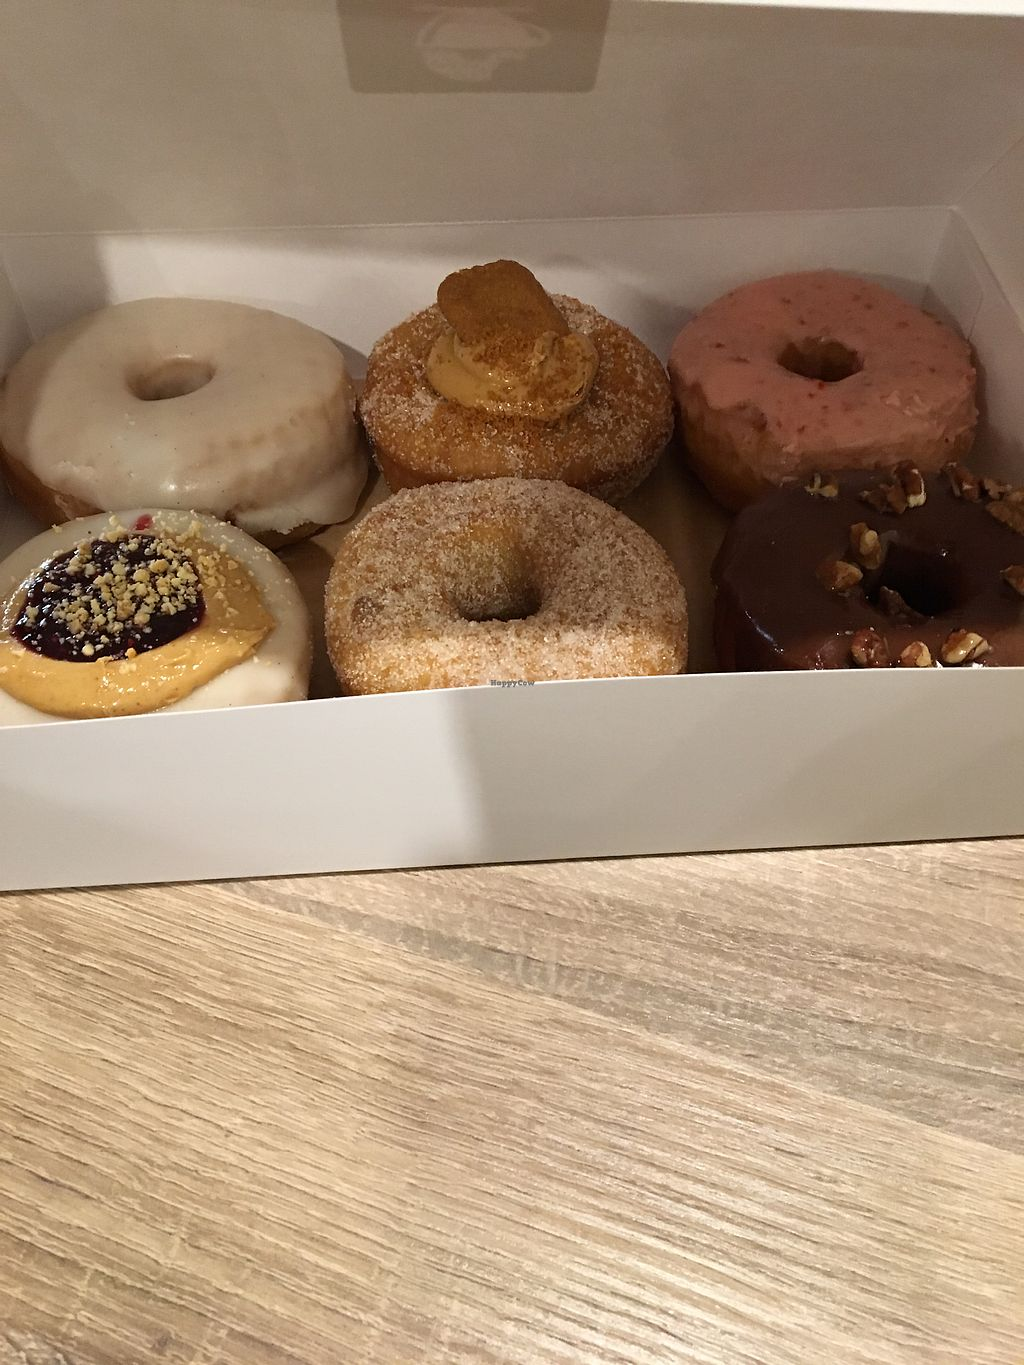 "Photo of Craft Donuts + Coffee  by <a href=""/members/profile/Mpveg"">Mpveg</a> <br/>Yum <br/> January 29, 2018  - <a href='/contact/abuse/image/110666/352292'>Report</a>"